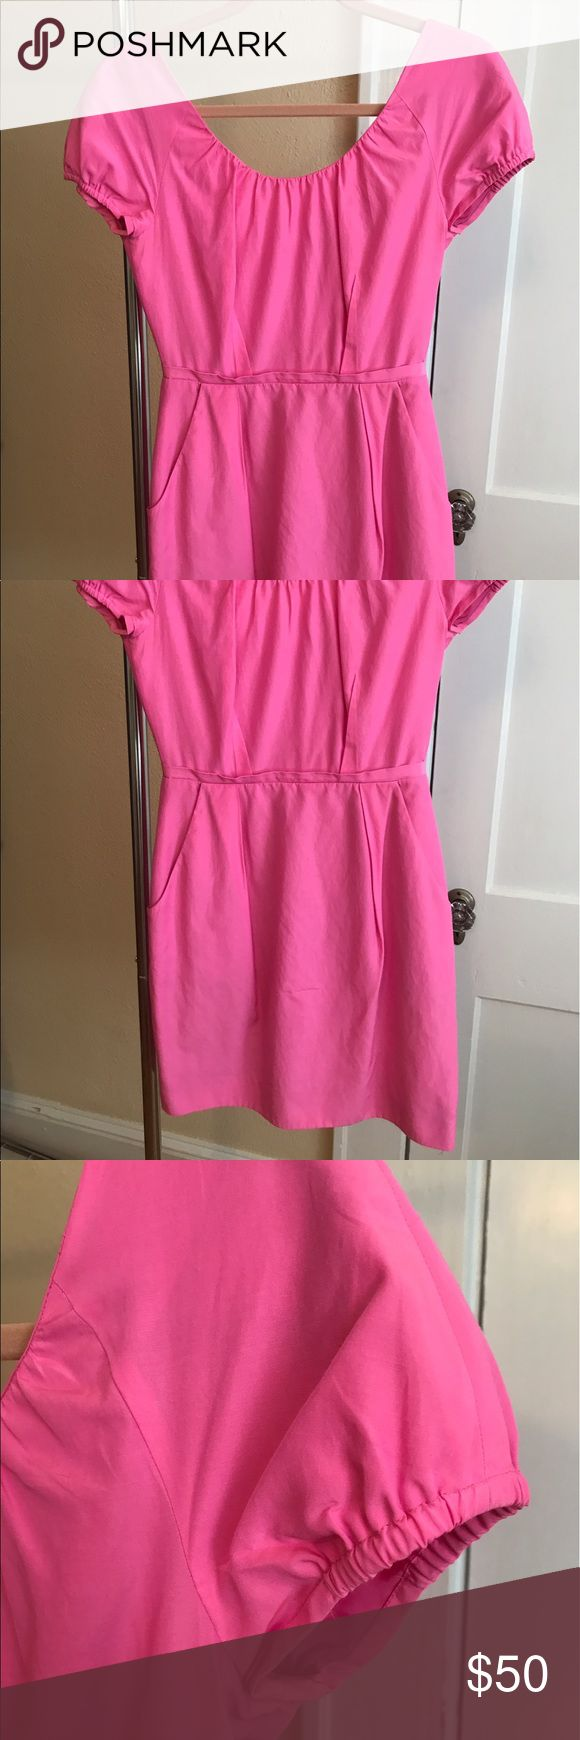 J. Crew Neon Pink Party Dress This J. Crew neon pink dress is perfect for a summer party! It has fun details like an exposed zipper and pockets to hold your lipstick or cell phone! Size 0. Dry clean only. J. Crew Dresses